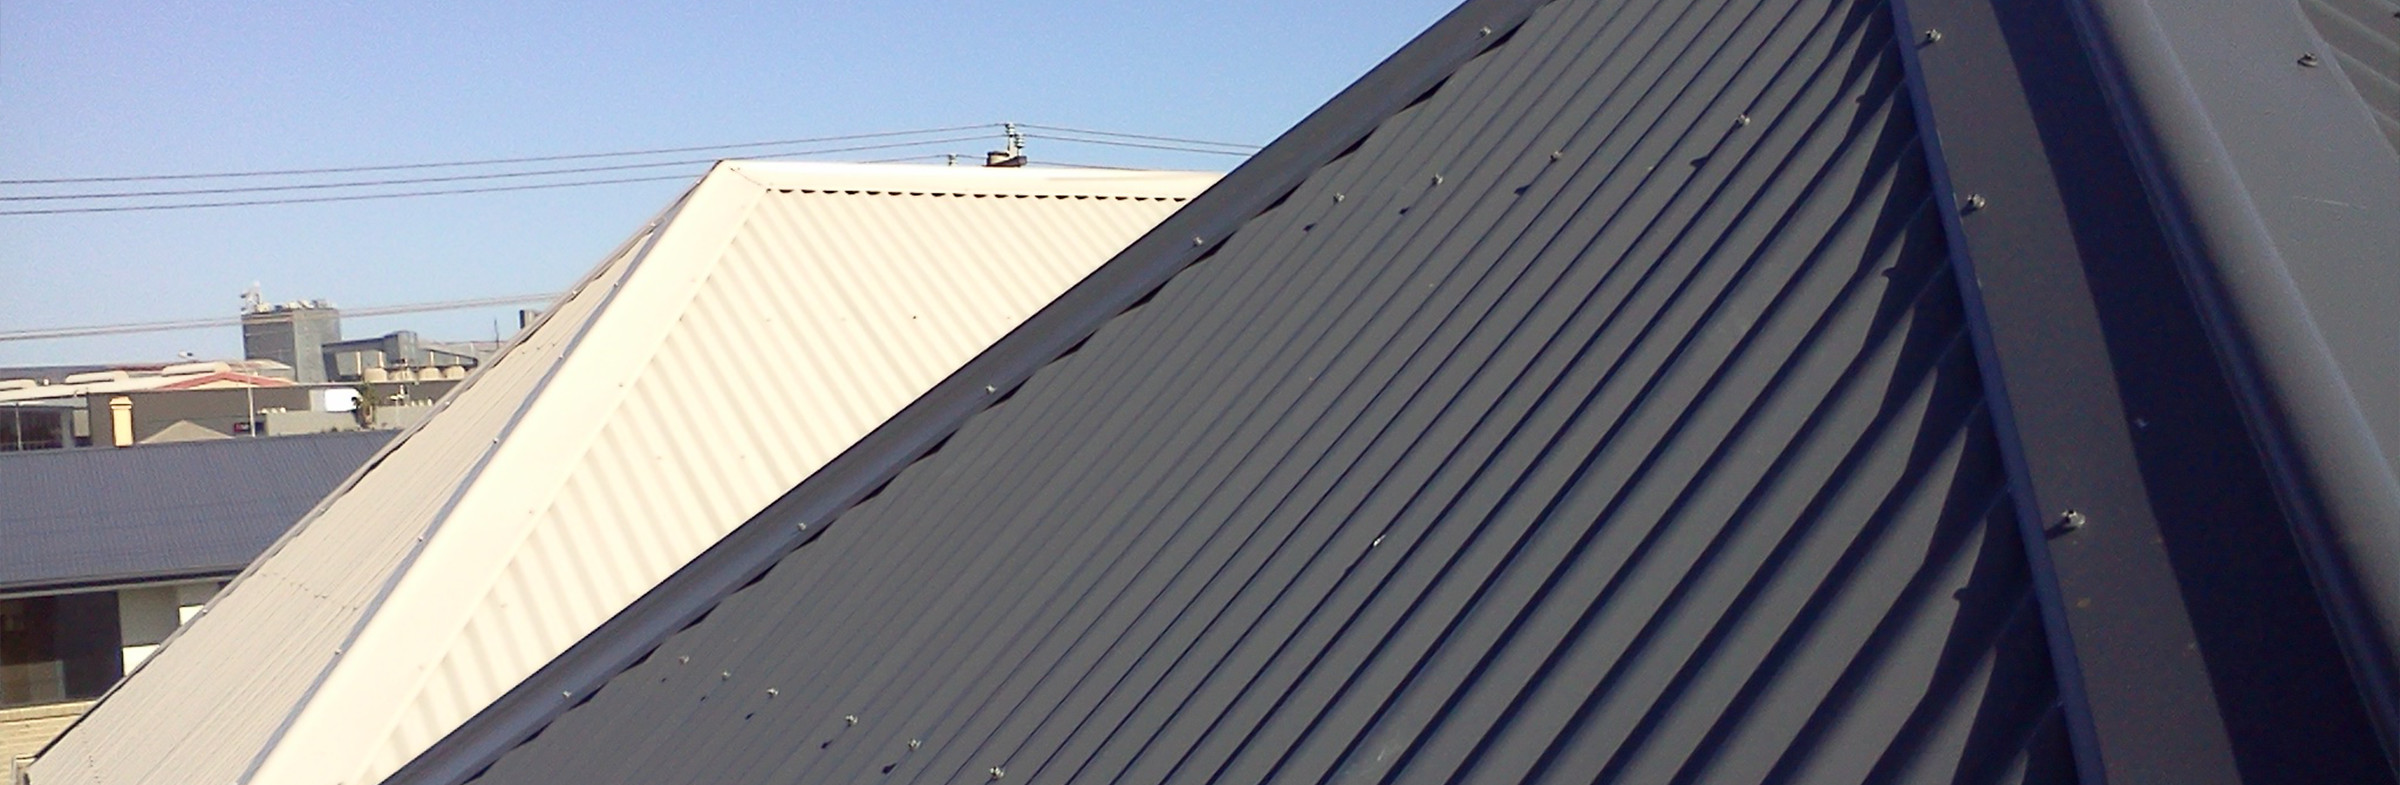 SKYLINE ROOFING NEWCASTLE 2